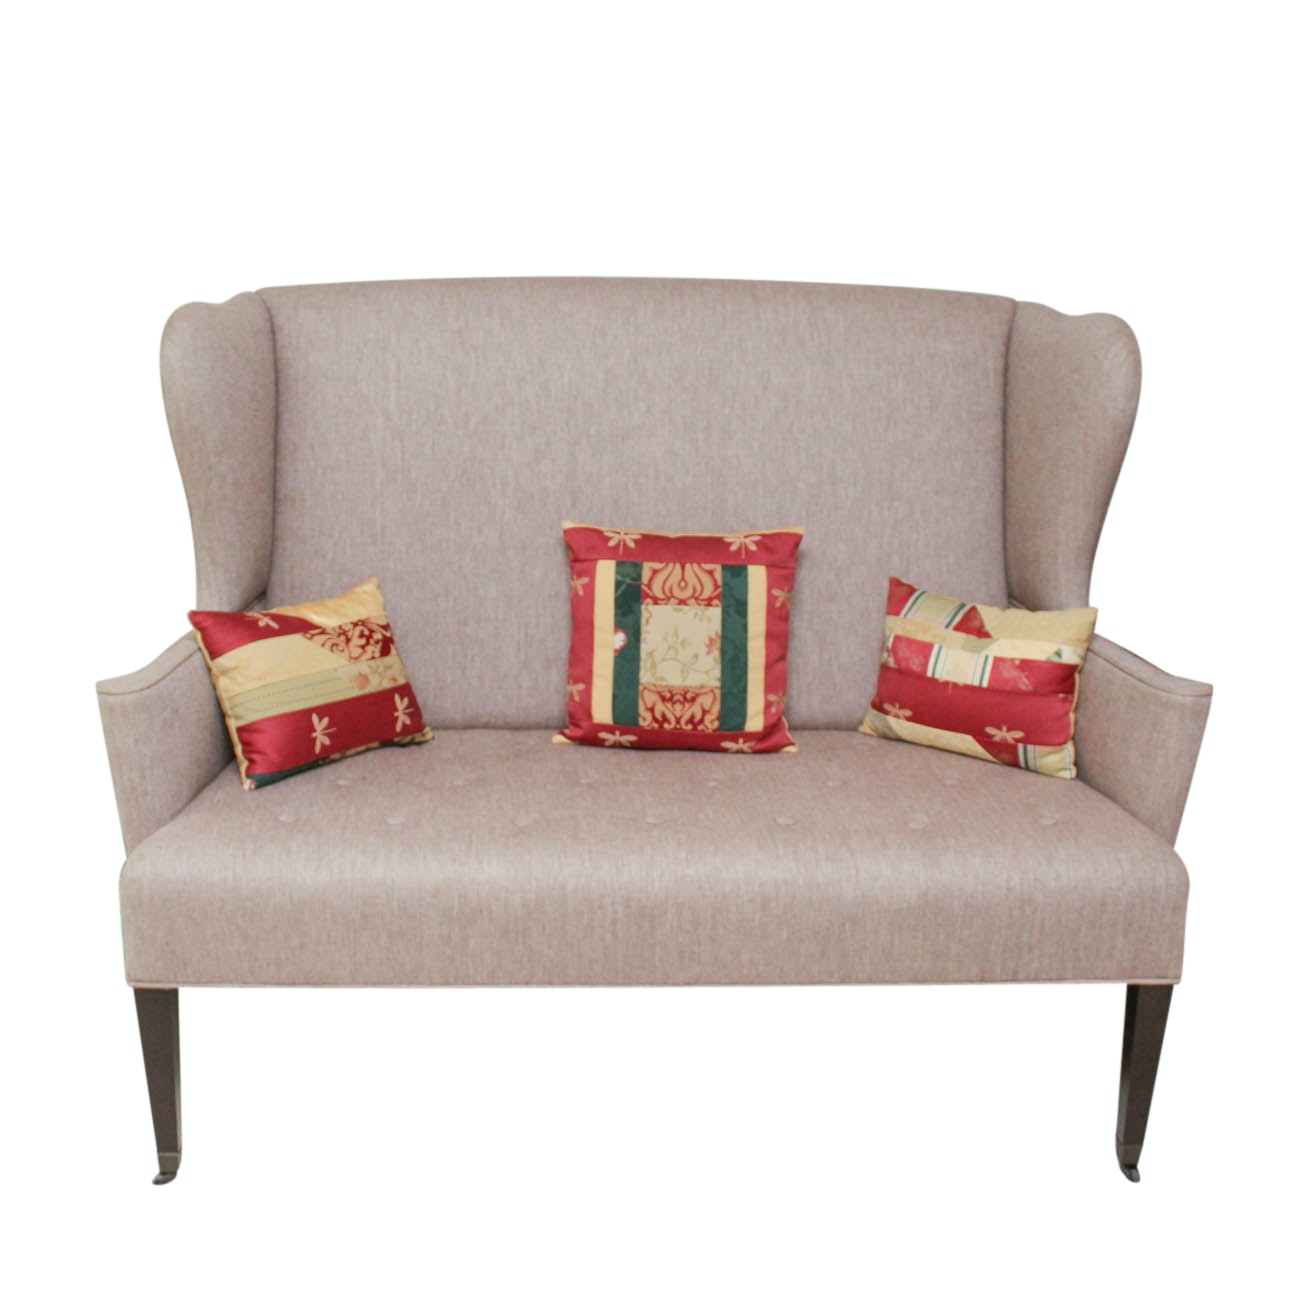 High Back Love Seat with Accent Pillows